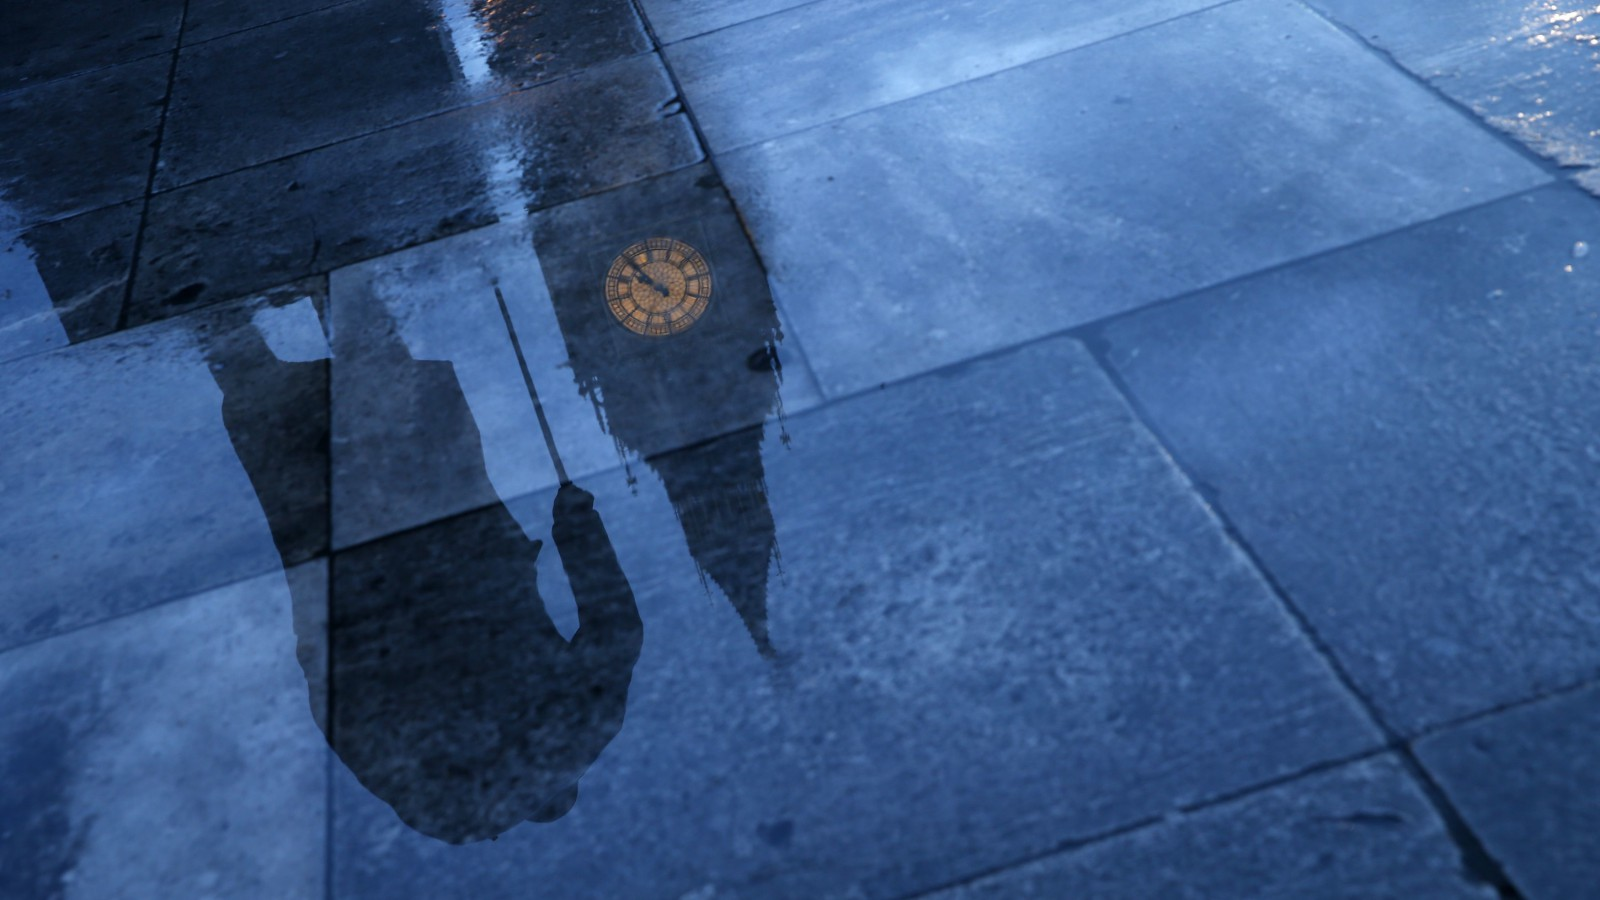 The statue of Britain's former Prime Minister Winston Churchill is reflected onto the rain covered pavement in front of the Houses of Parliament in London, January 30, 2015. Today marks the 50th anniversary of the funeral of Churchill, Britain's wartime leader.   REUTERS/Eddie Keogh (BRITAIN - Tags: POLITICS ANNIVERSARY TPX IMAGES OF THE DAY) - RTR4NK6O